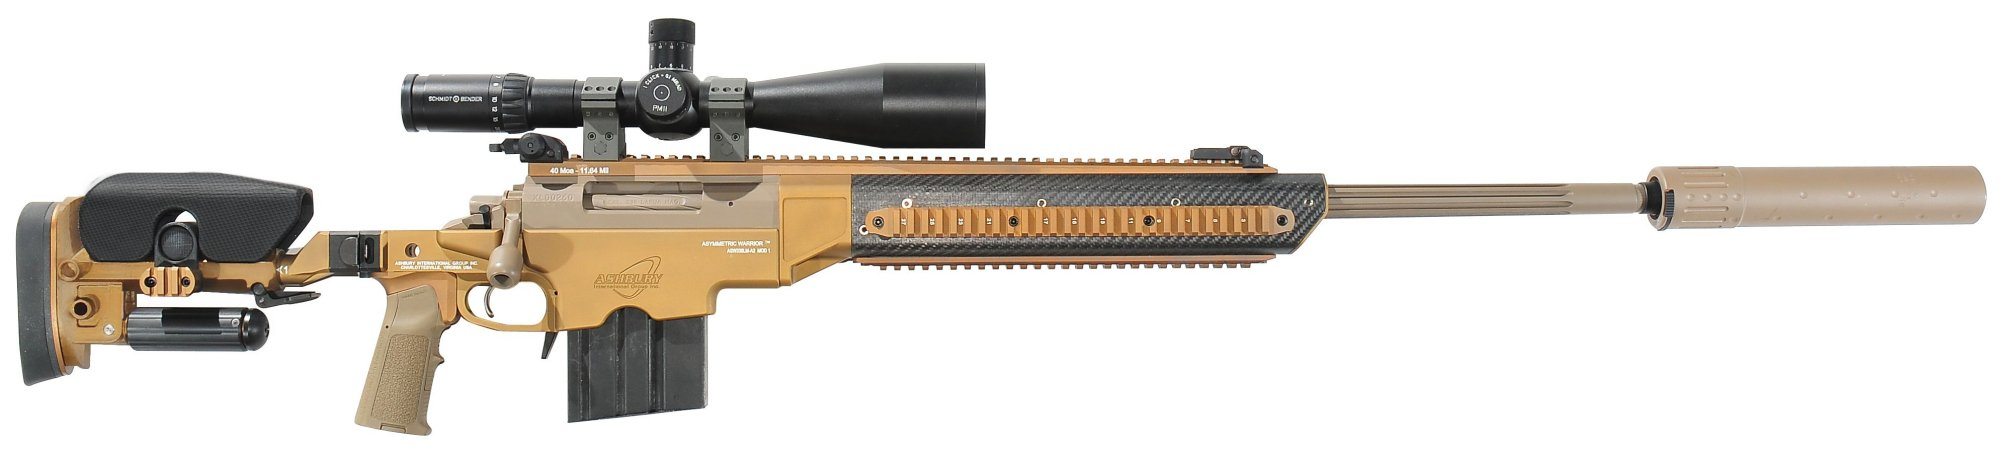 http://www.defensereview.com/stories/ashbury/AIG_Asymmetric_Warrior_338LM_Precision_Sniper_Rifle_2.jpg